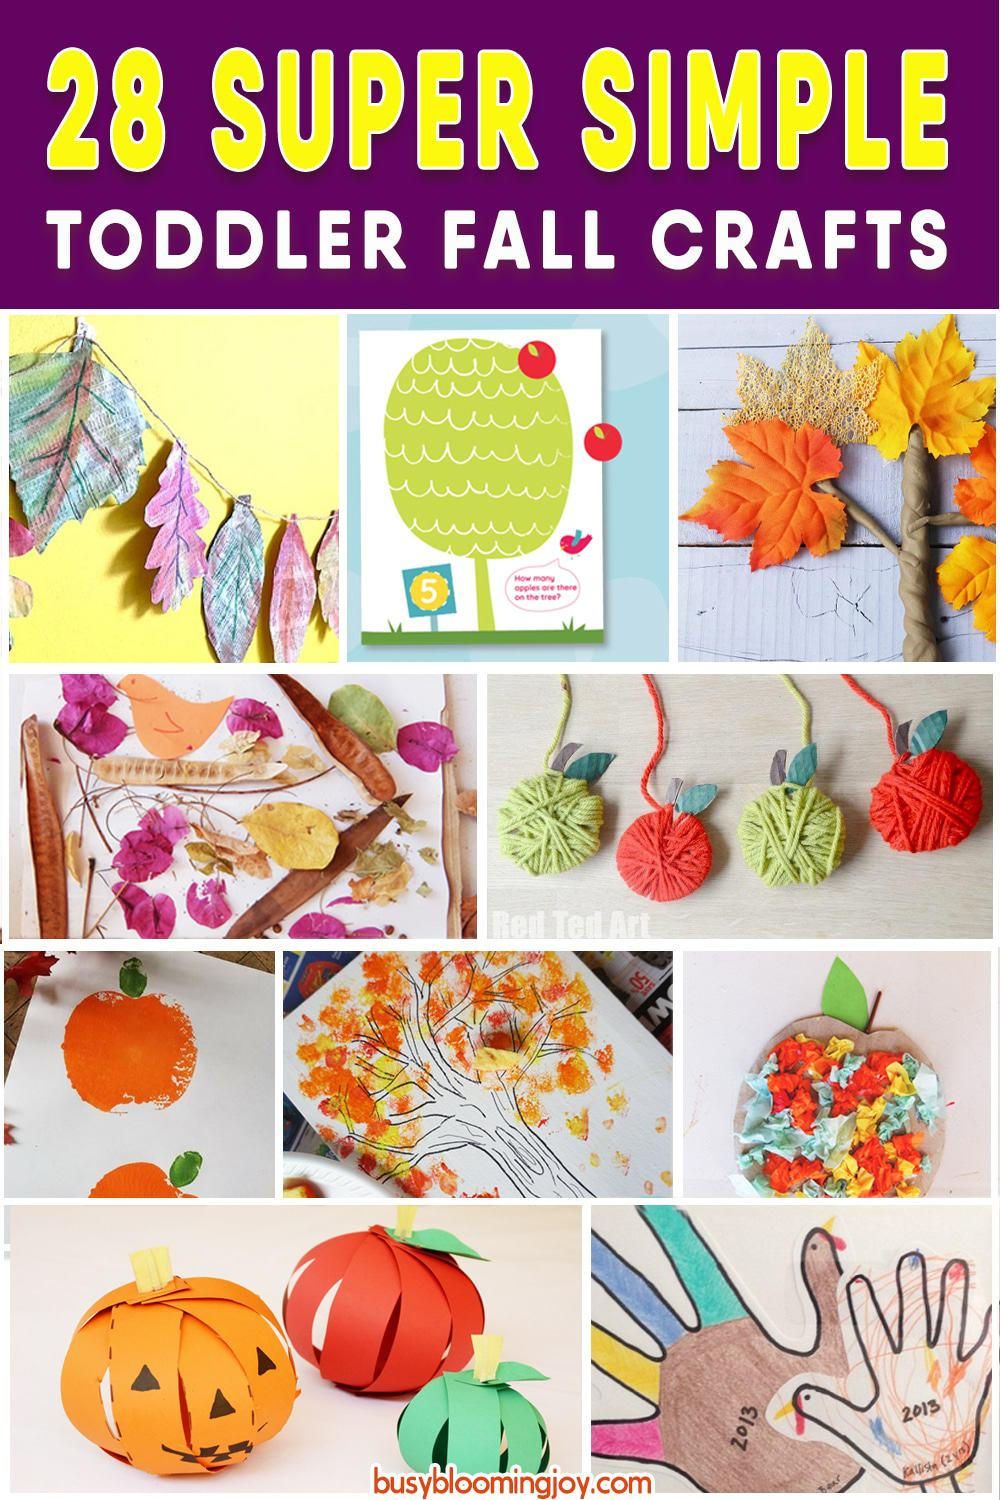 28 Cute And Super Simple Fall Crafts For Toddlers